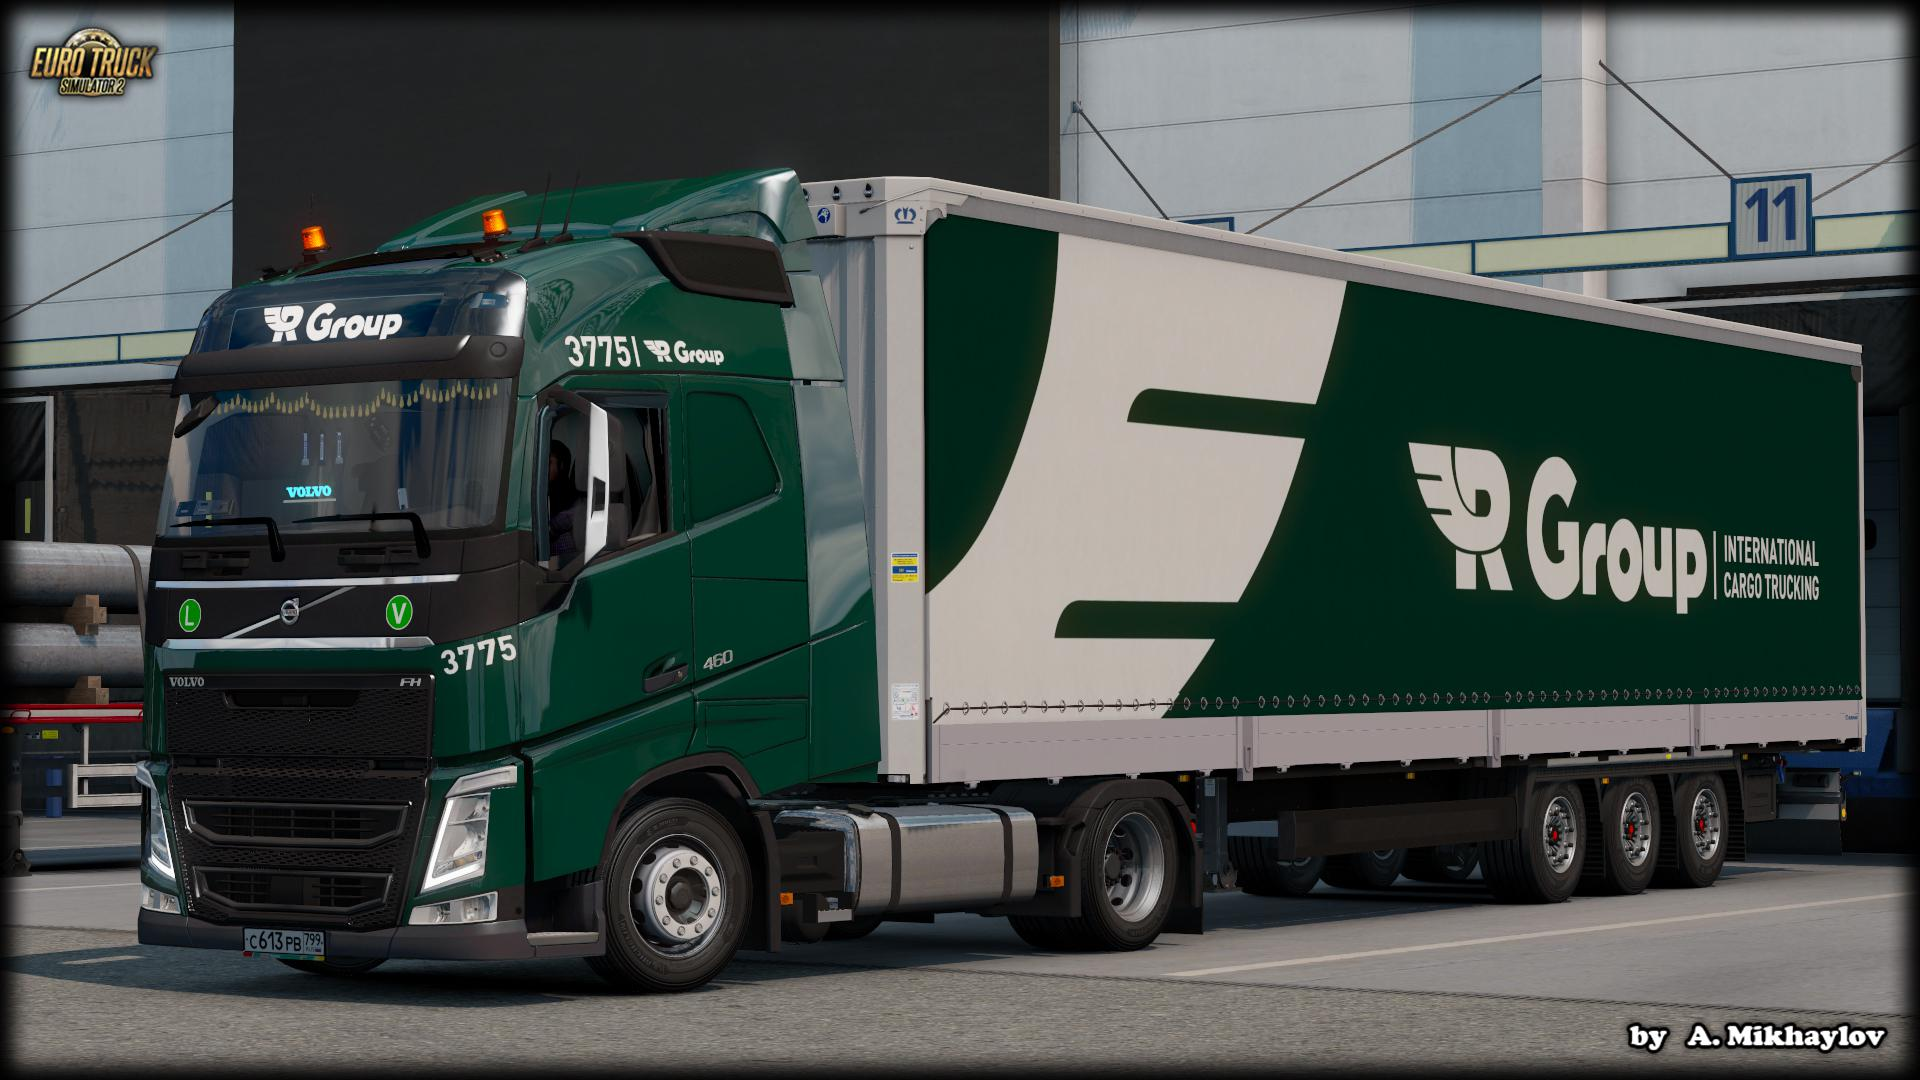 ETS2 - Volvo FH4 R-Group Combo Skin V1.0 (1.36.x)